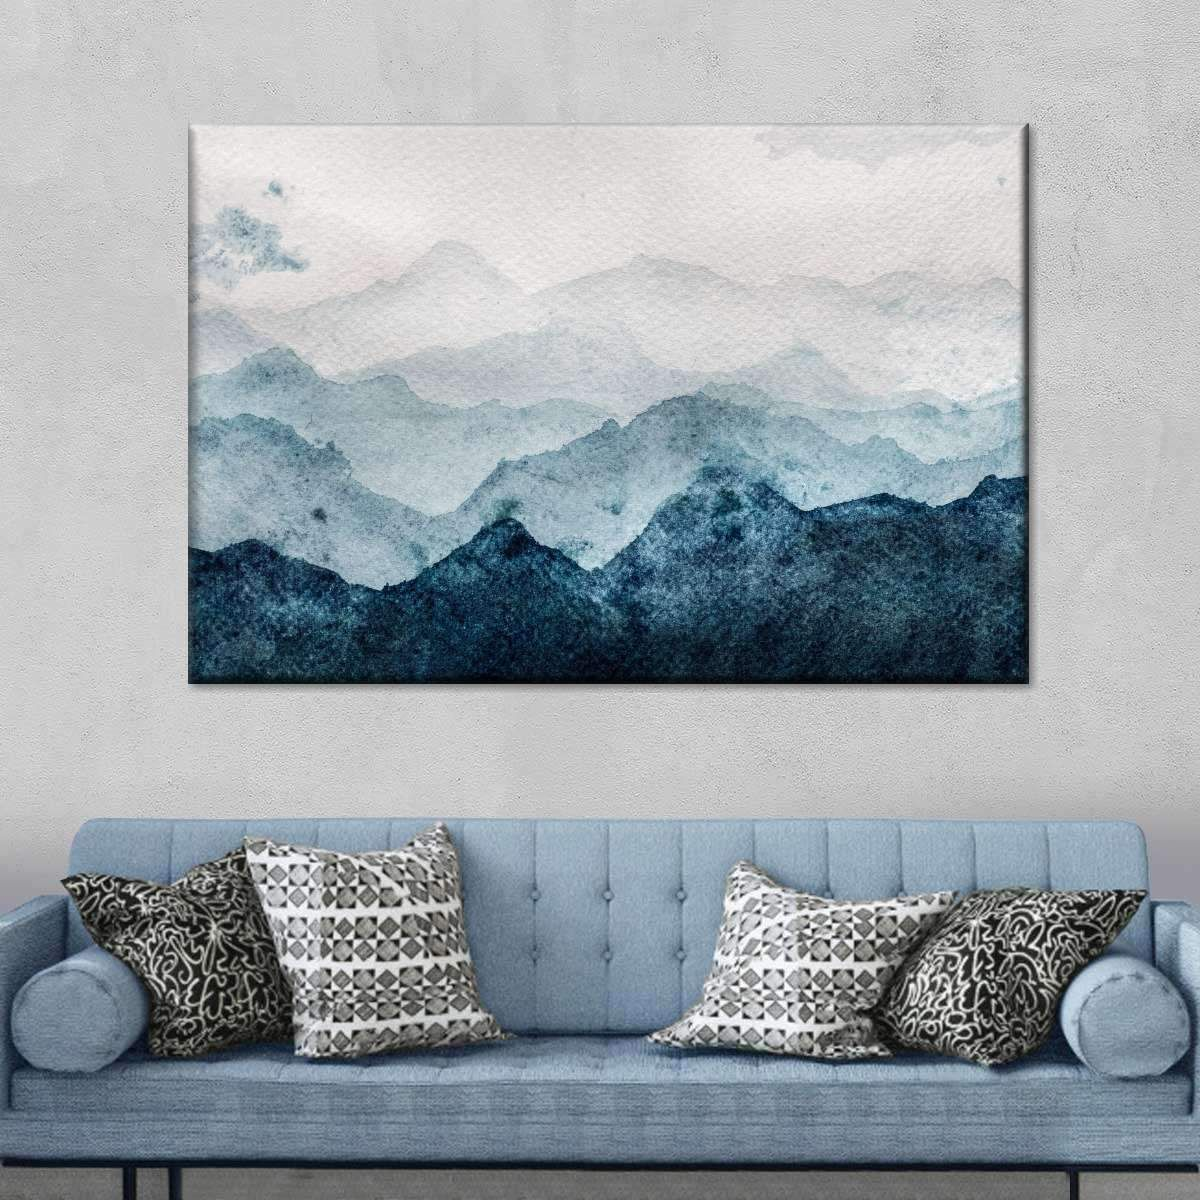 Japanese Mountain Landscape Multi Panel Canvas Wall Art In 2020 Mountain Wall Painting Diy Abstract Canvas Art Japanese Wall Art